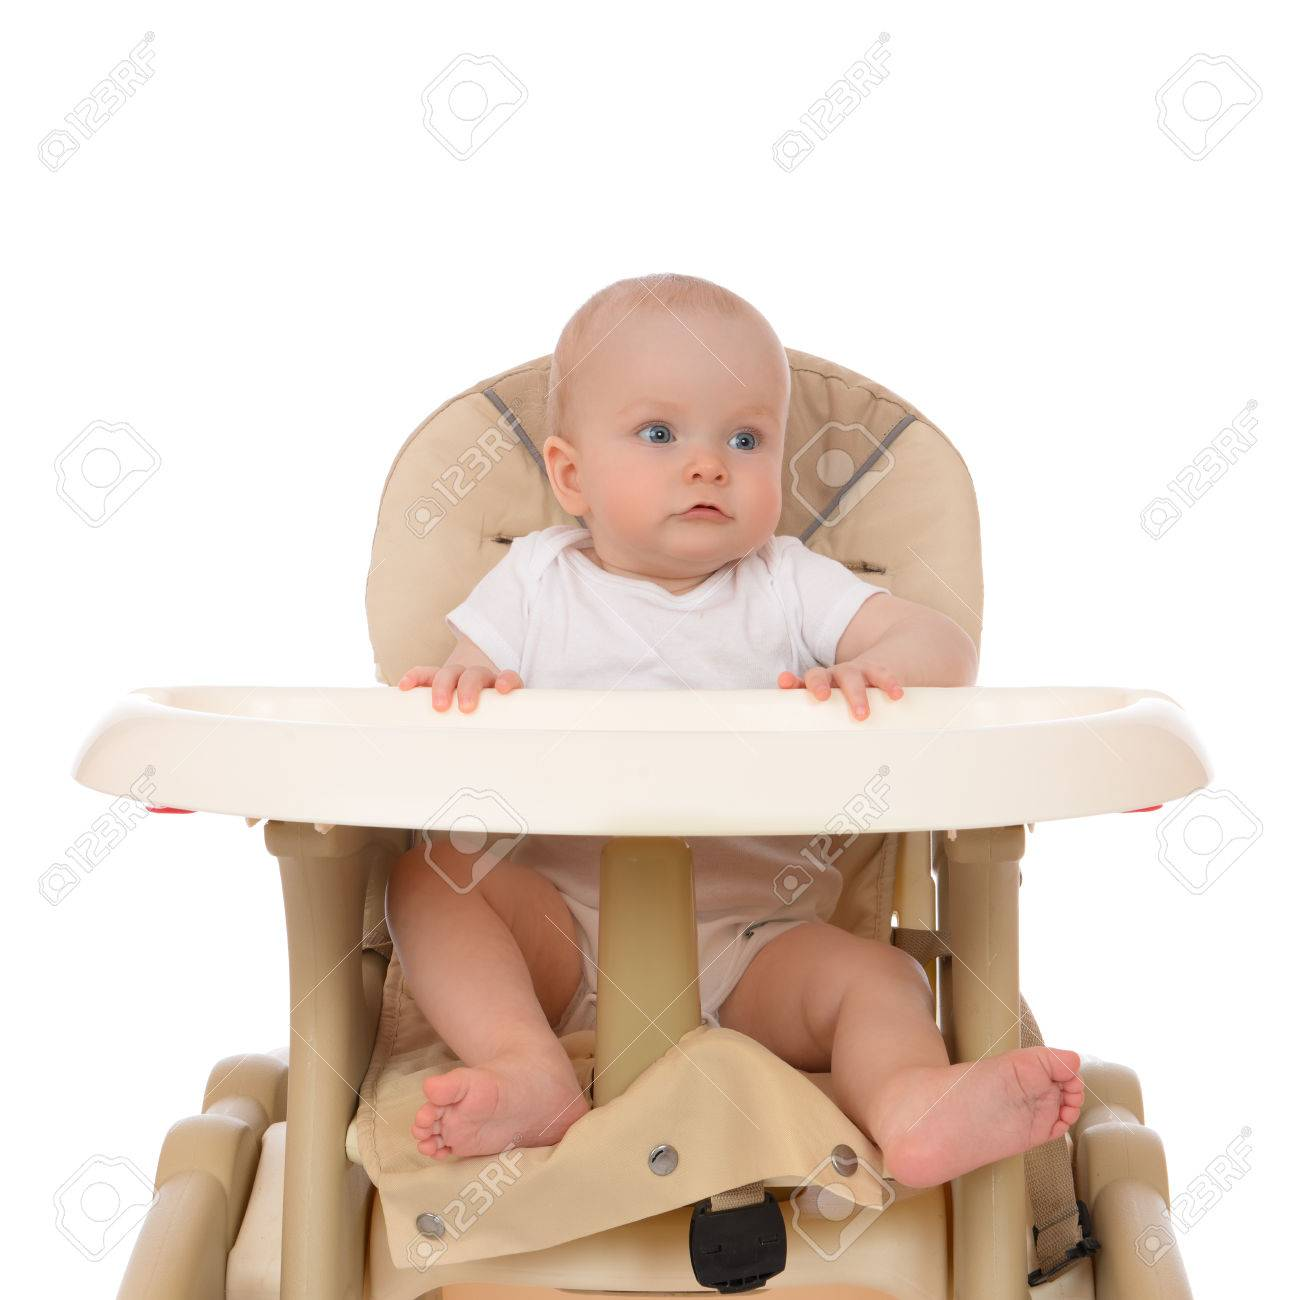 Infant child girl toddler in diaper sitting in baby chair isolated on a white background Stock  sc 1 st  123RF.com & Infant Child Girl Toddler In Diaper Sitting In Baby Chair Isolated ...